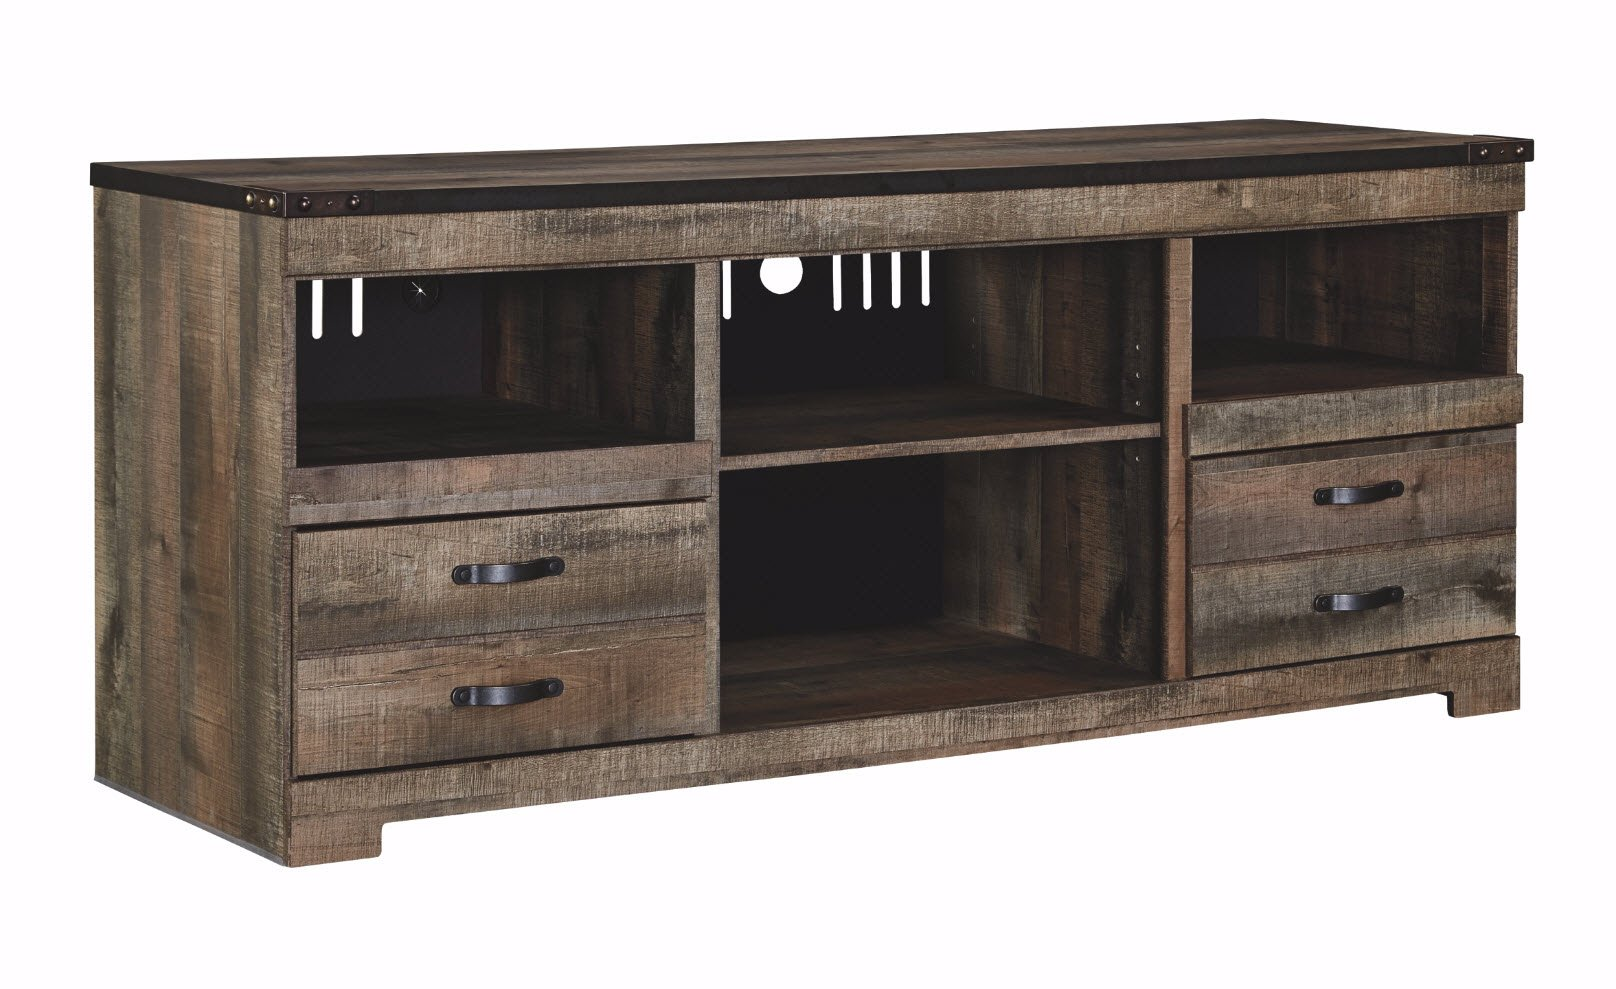 Signature Design by Ashley W446-68 Trinell Entertainment Stand